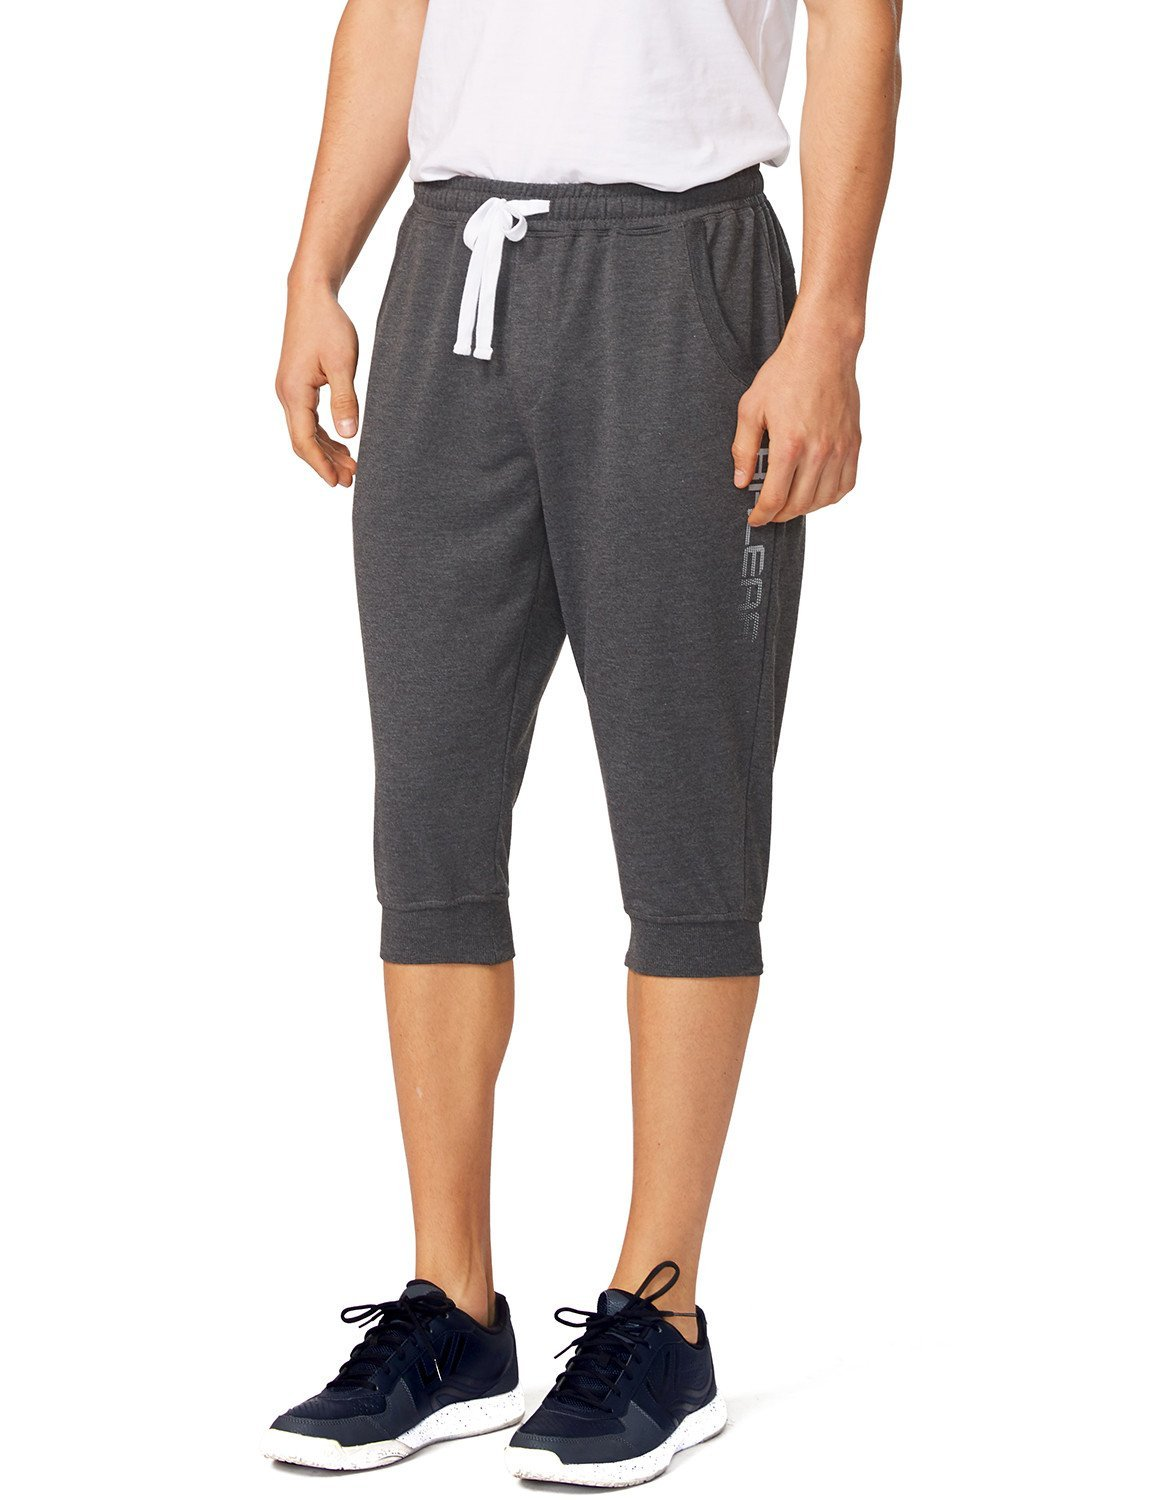 Baleaf Men's Sports Casual Jogger Capri Pant